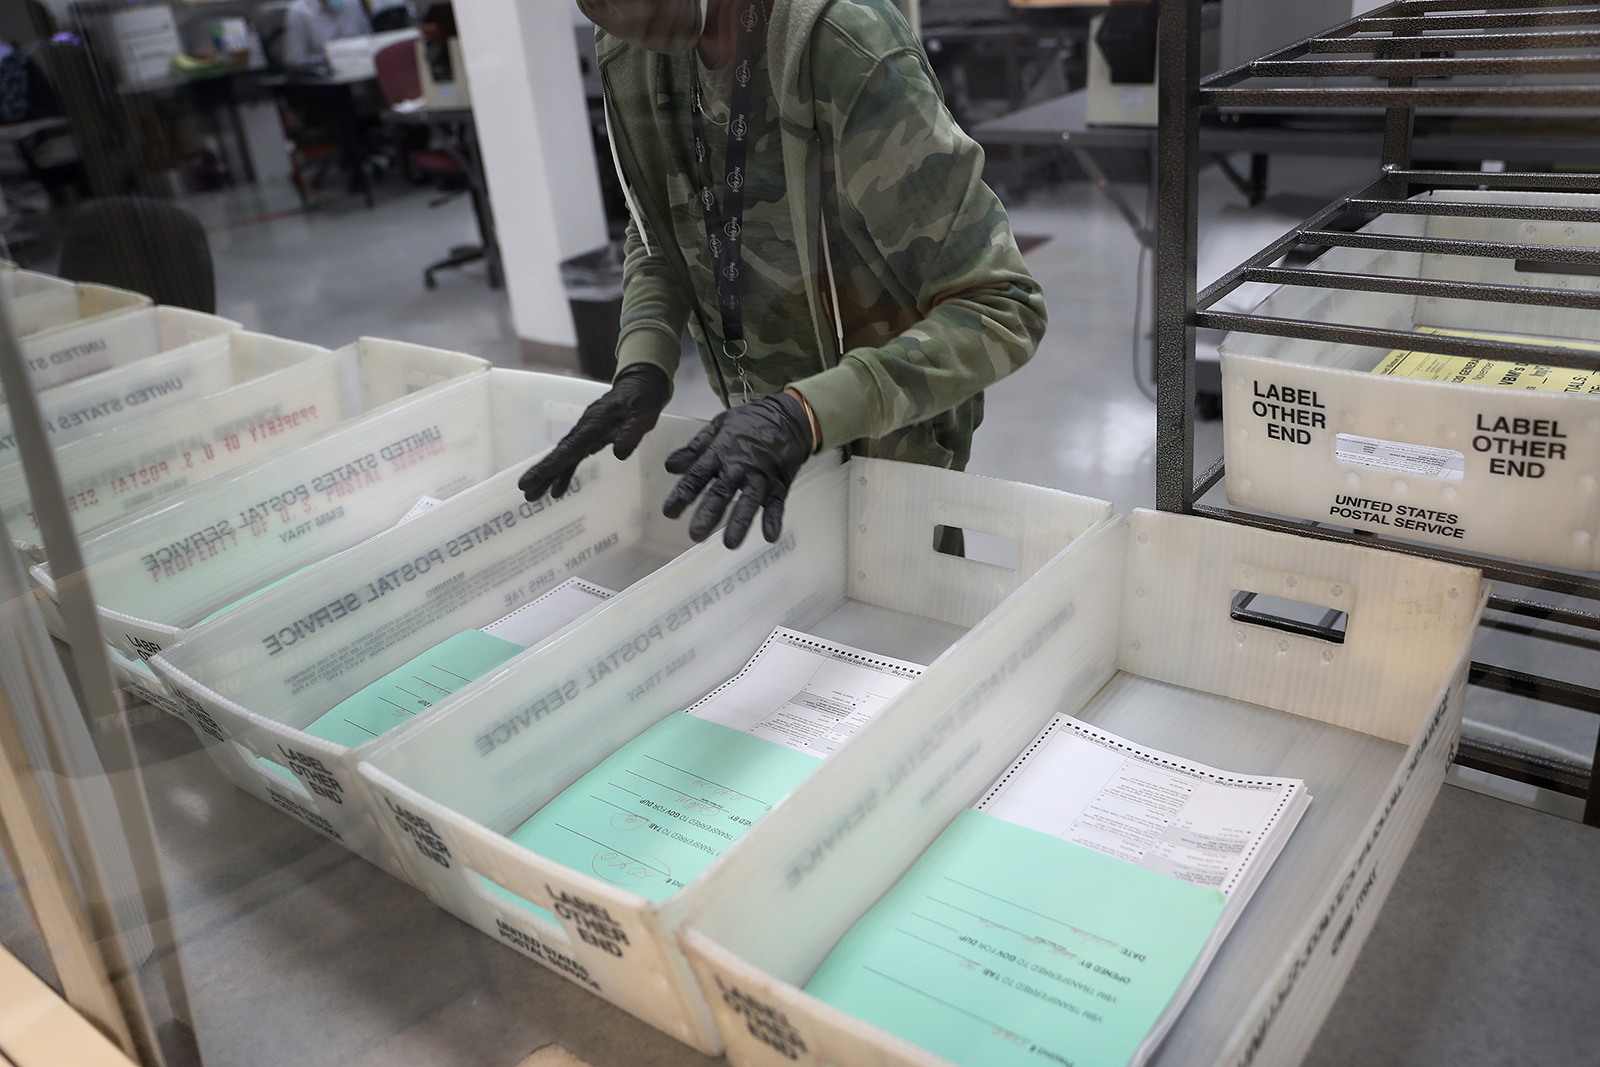 A worker at the Miami-Dade County Elections Department works on tabulating the Vote by Mail ballots that have been returned for the general election on October 30, in Doral, Florida.